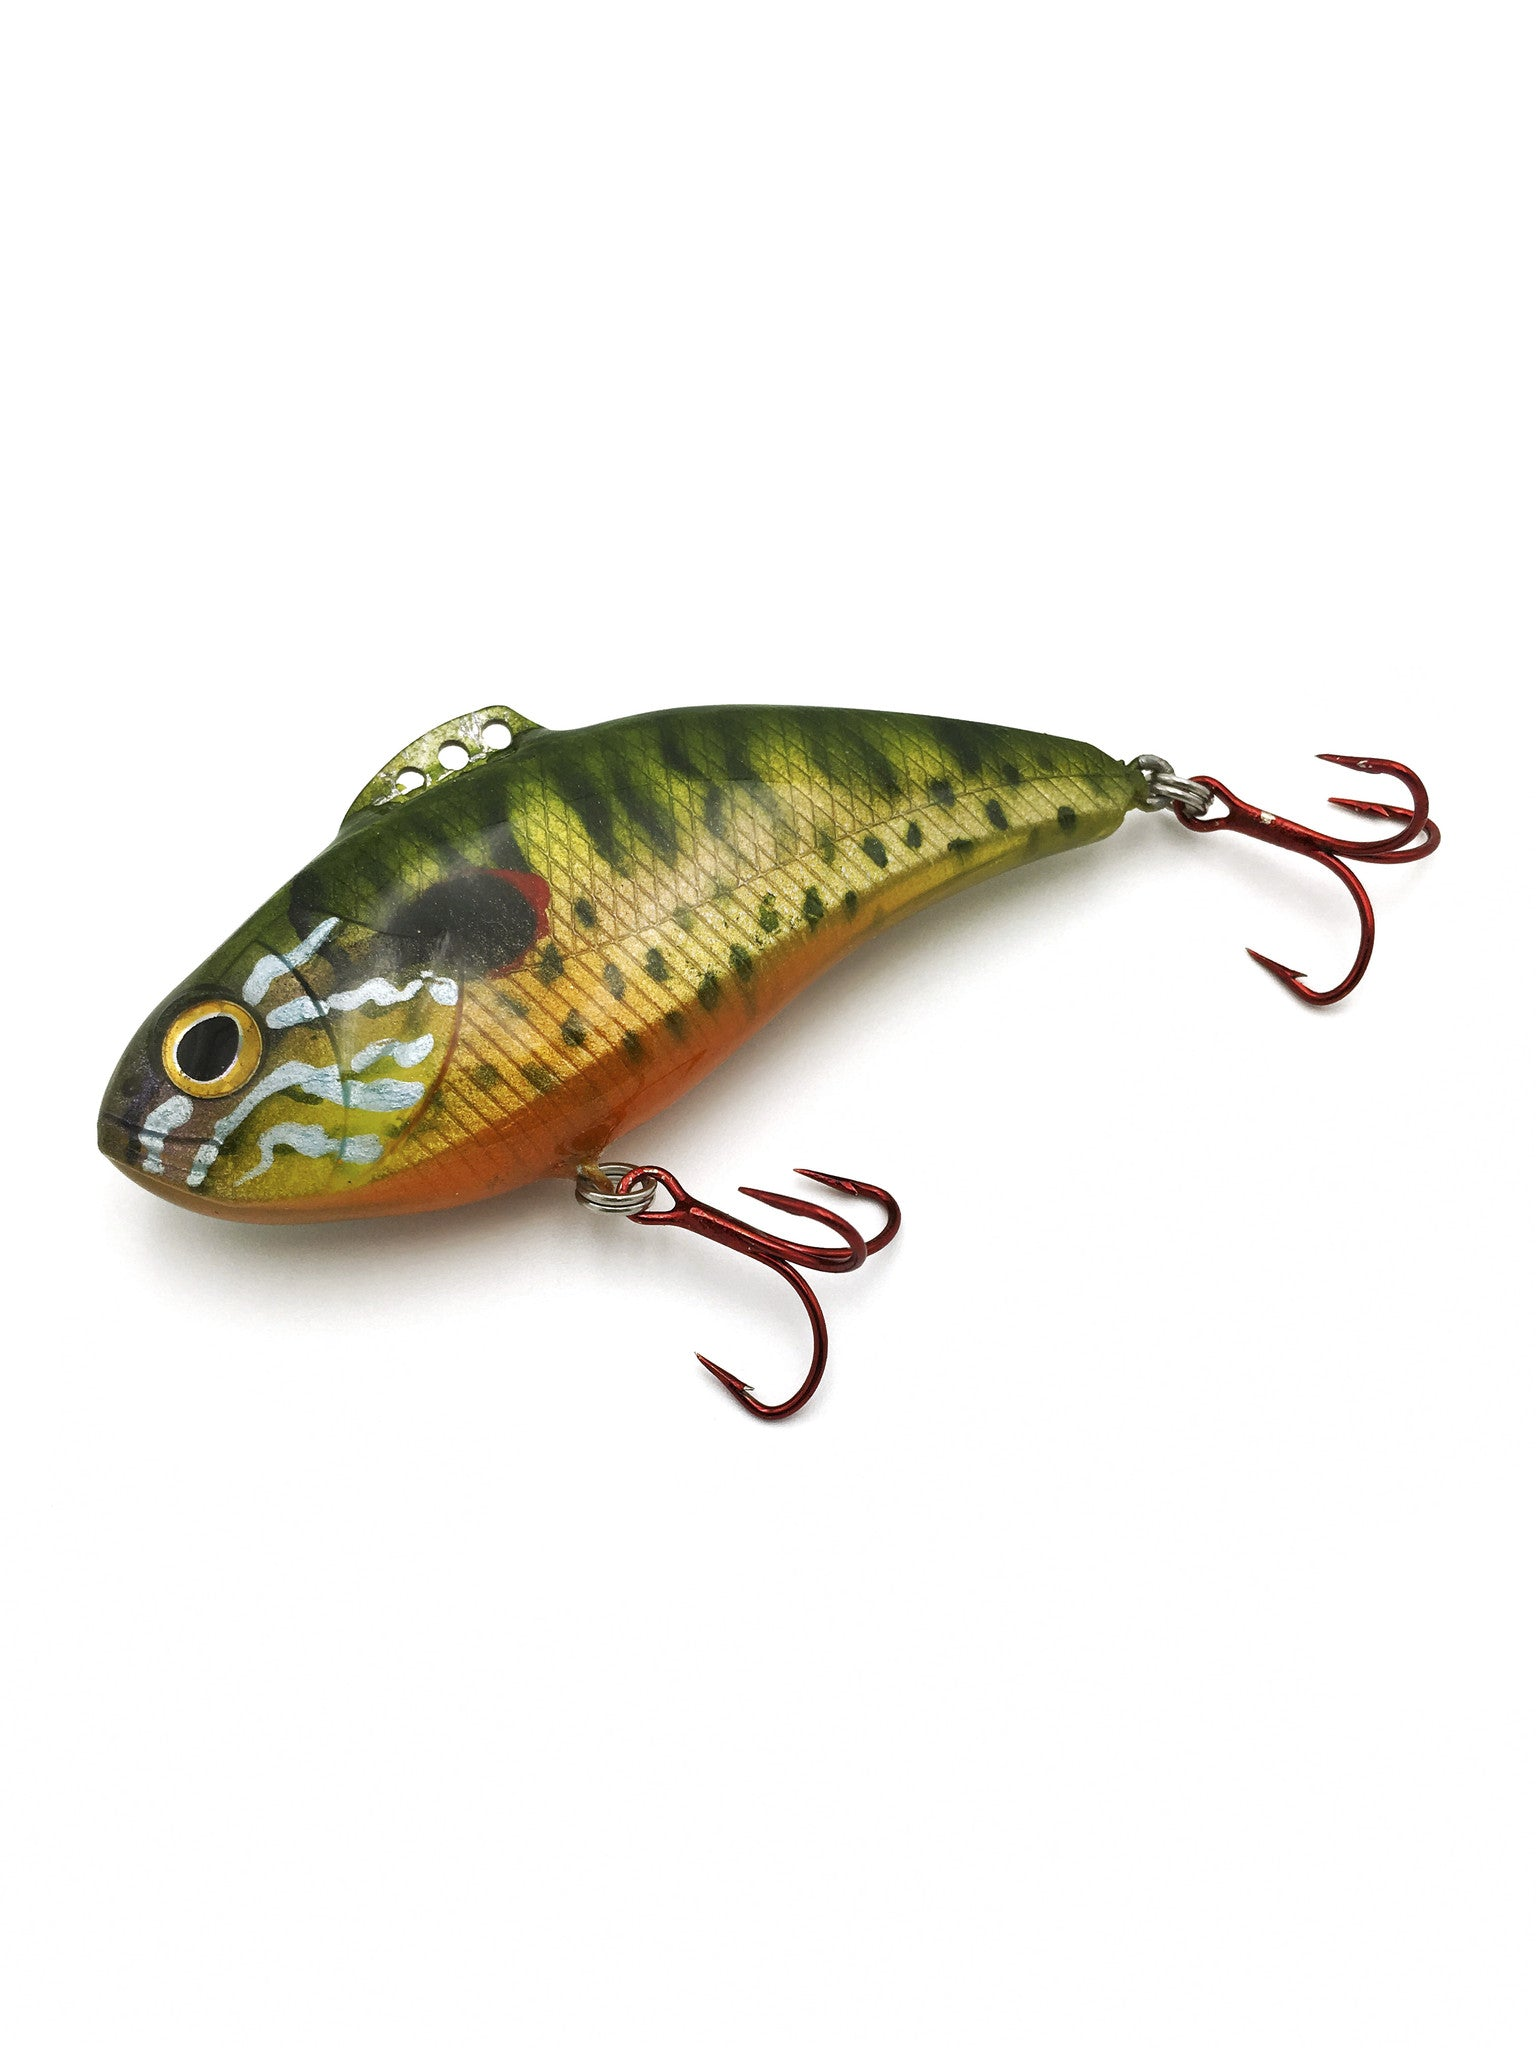 Red Ear Sunfish Bulls Eye Crank Jr